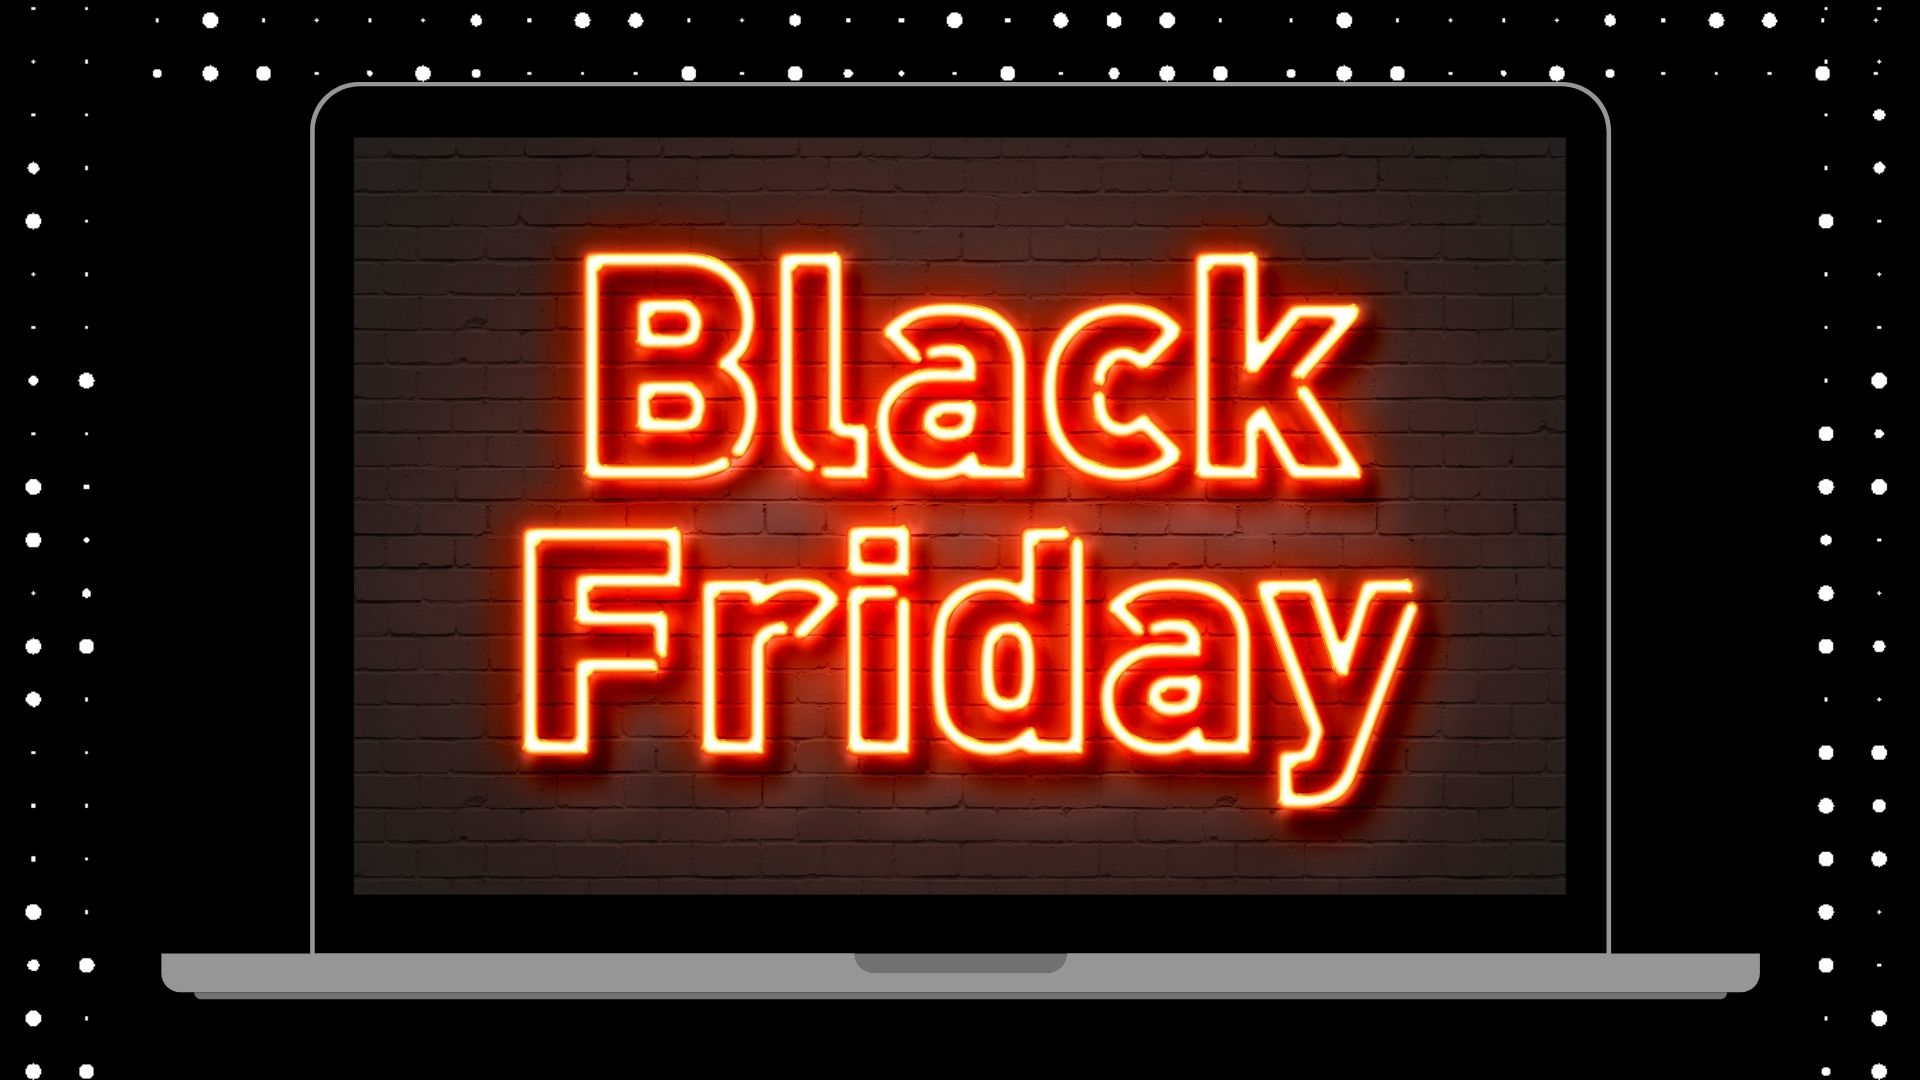 Black Friday 2020 - 10 Best Sites To Shop